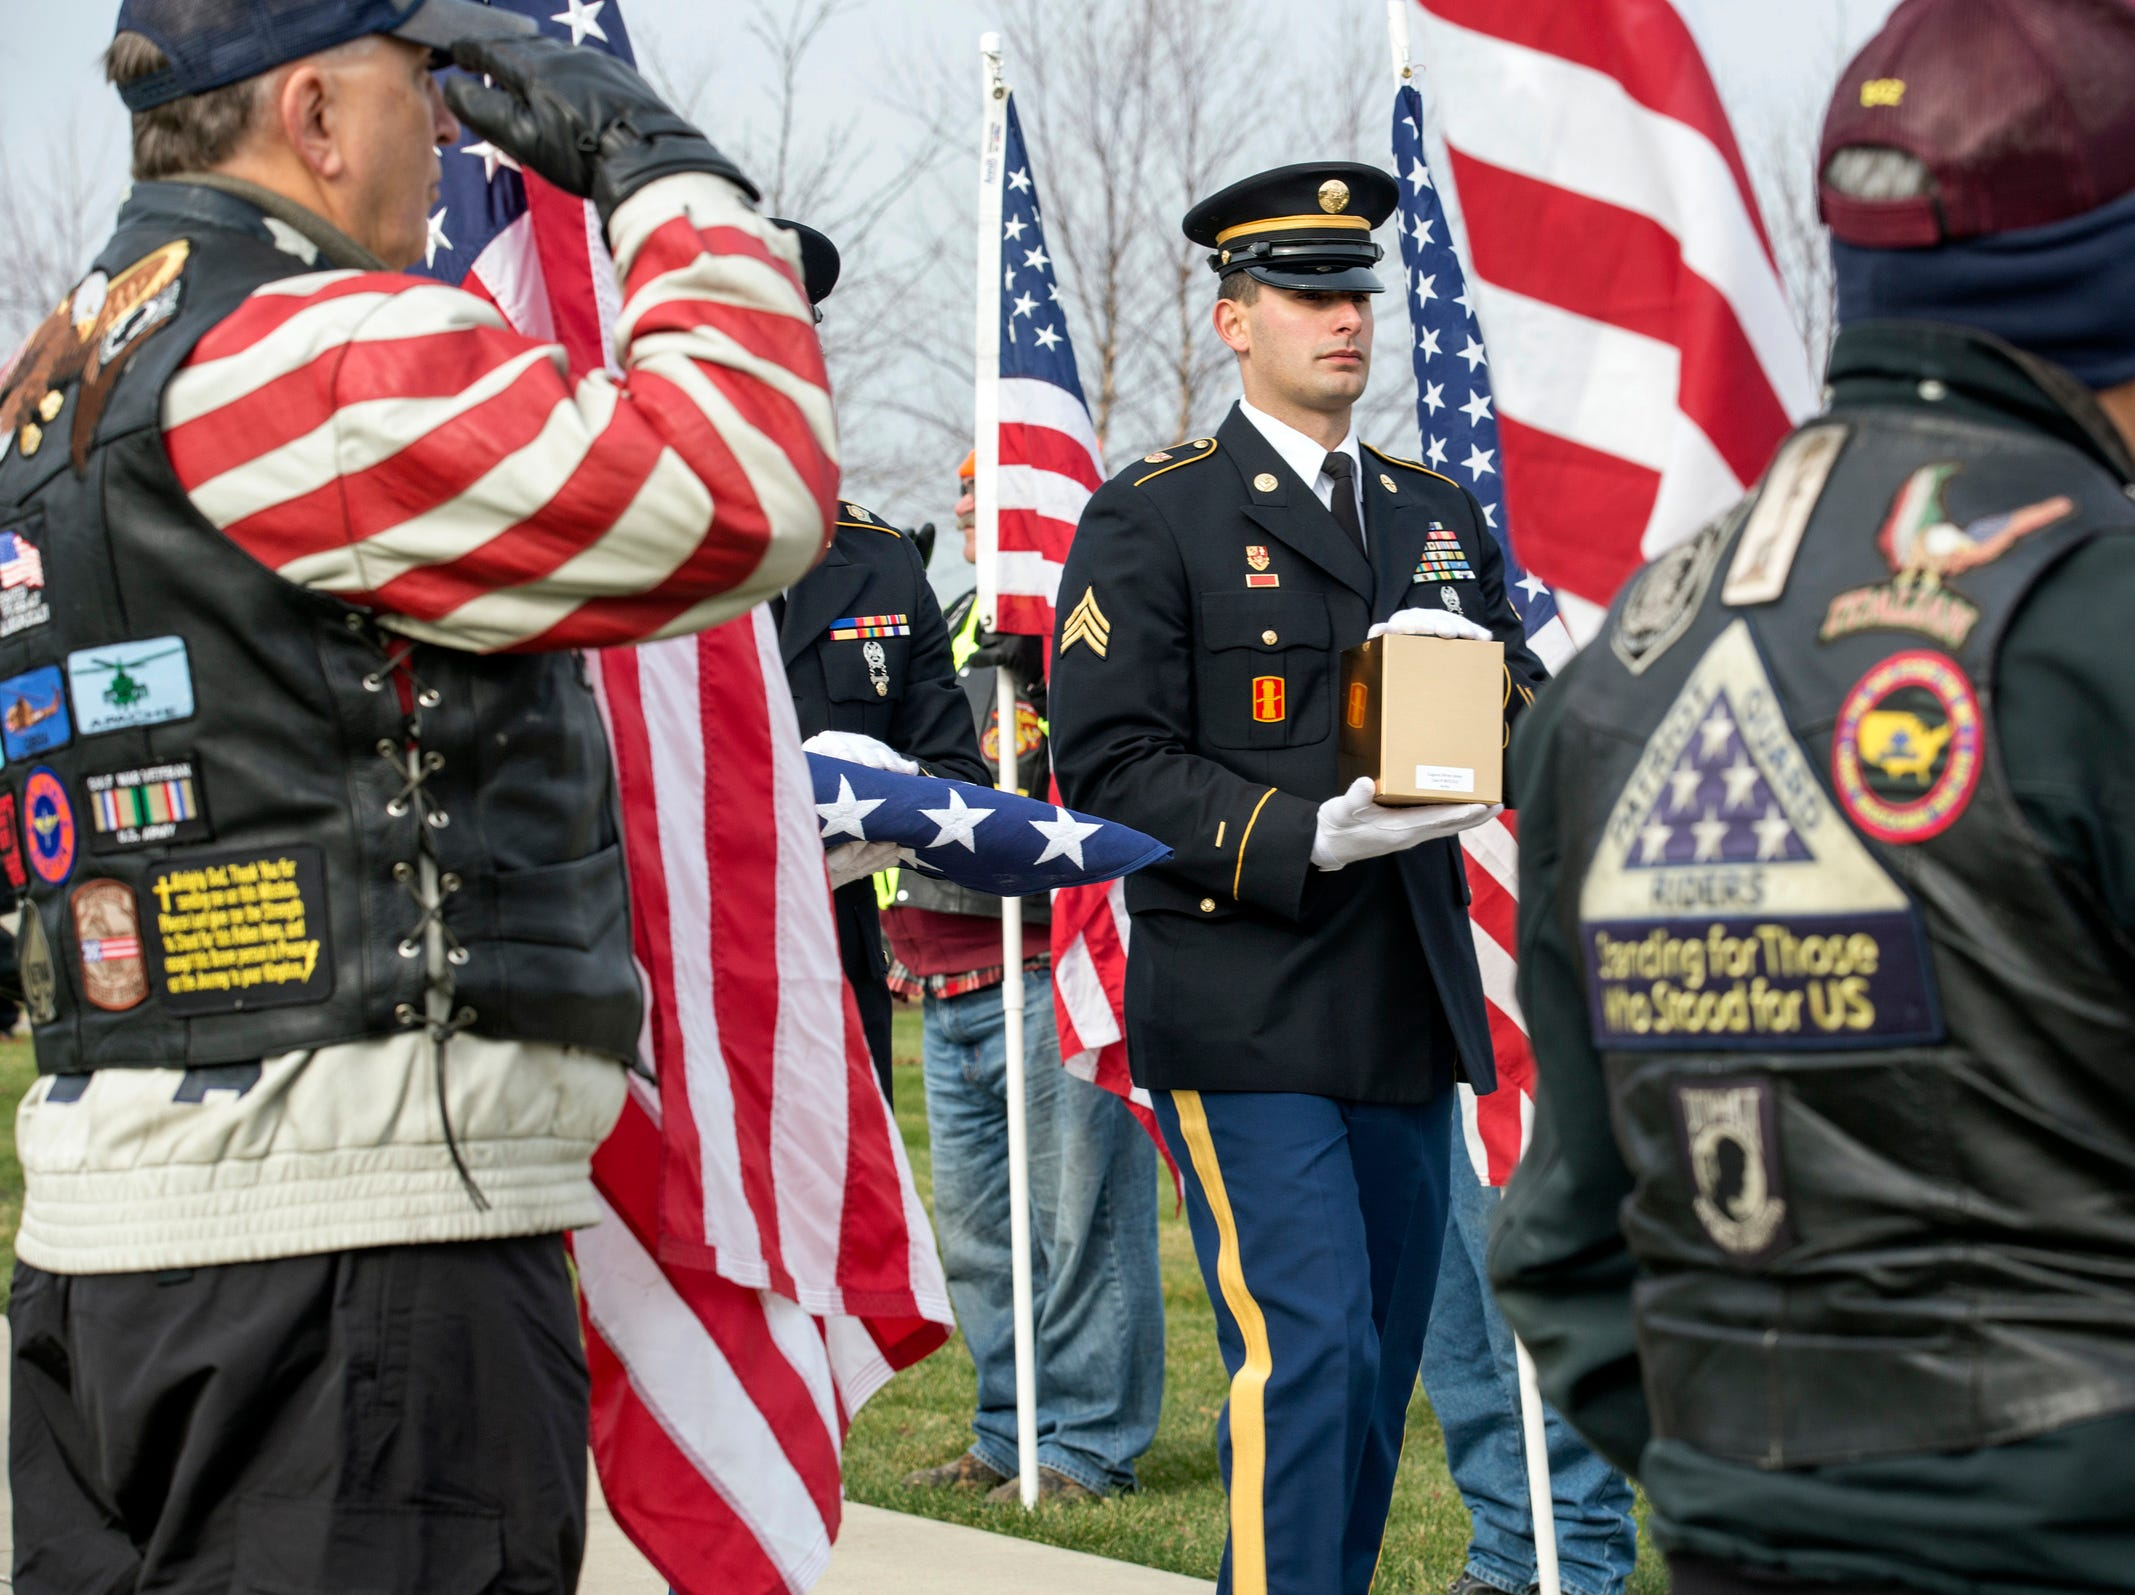 Remains of veterans found at funeral home honored during service